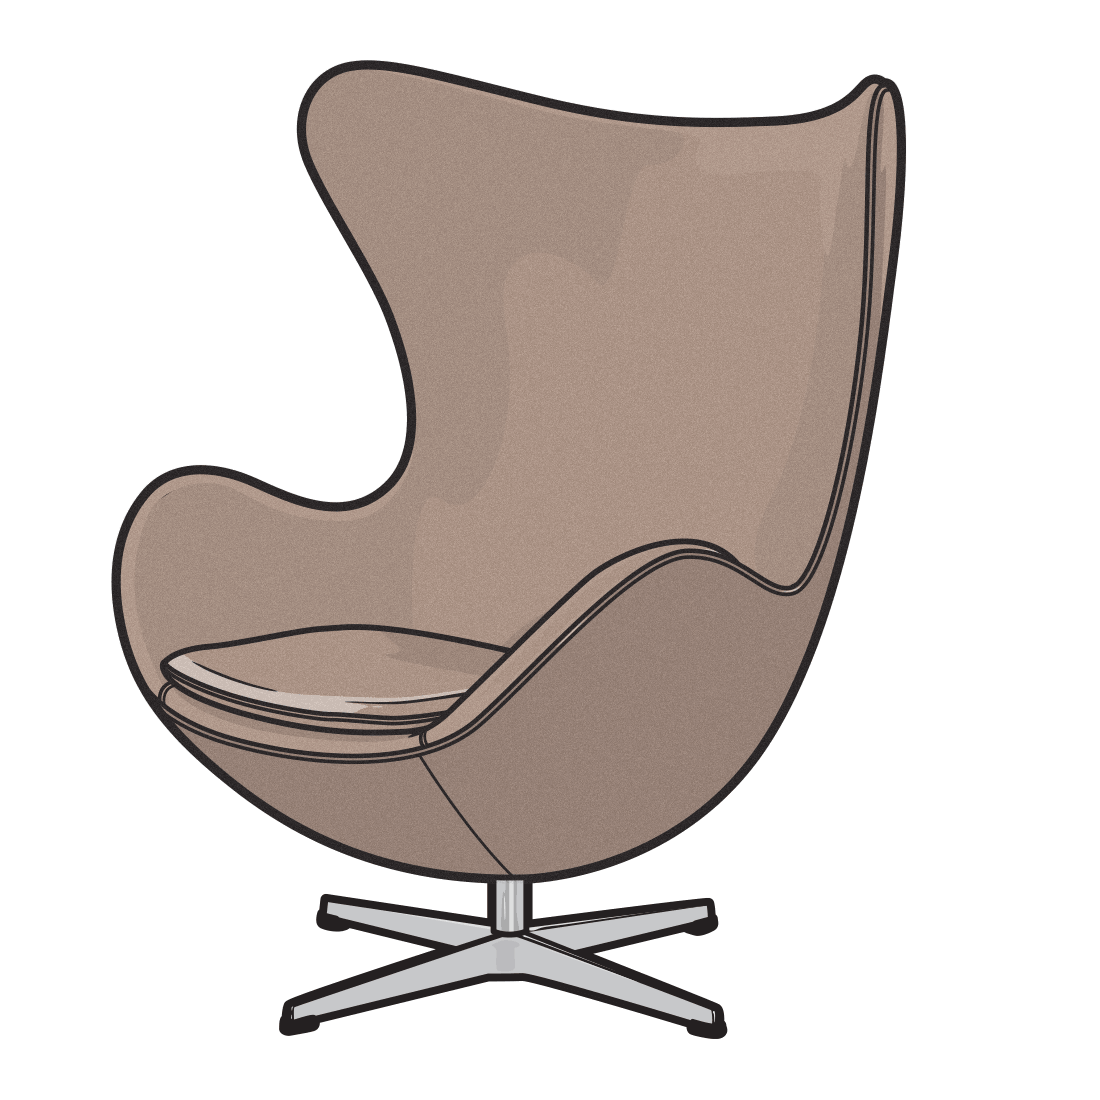 Illustration drawings of classic. Furniture clipart home furnishings